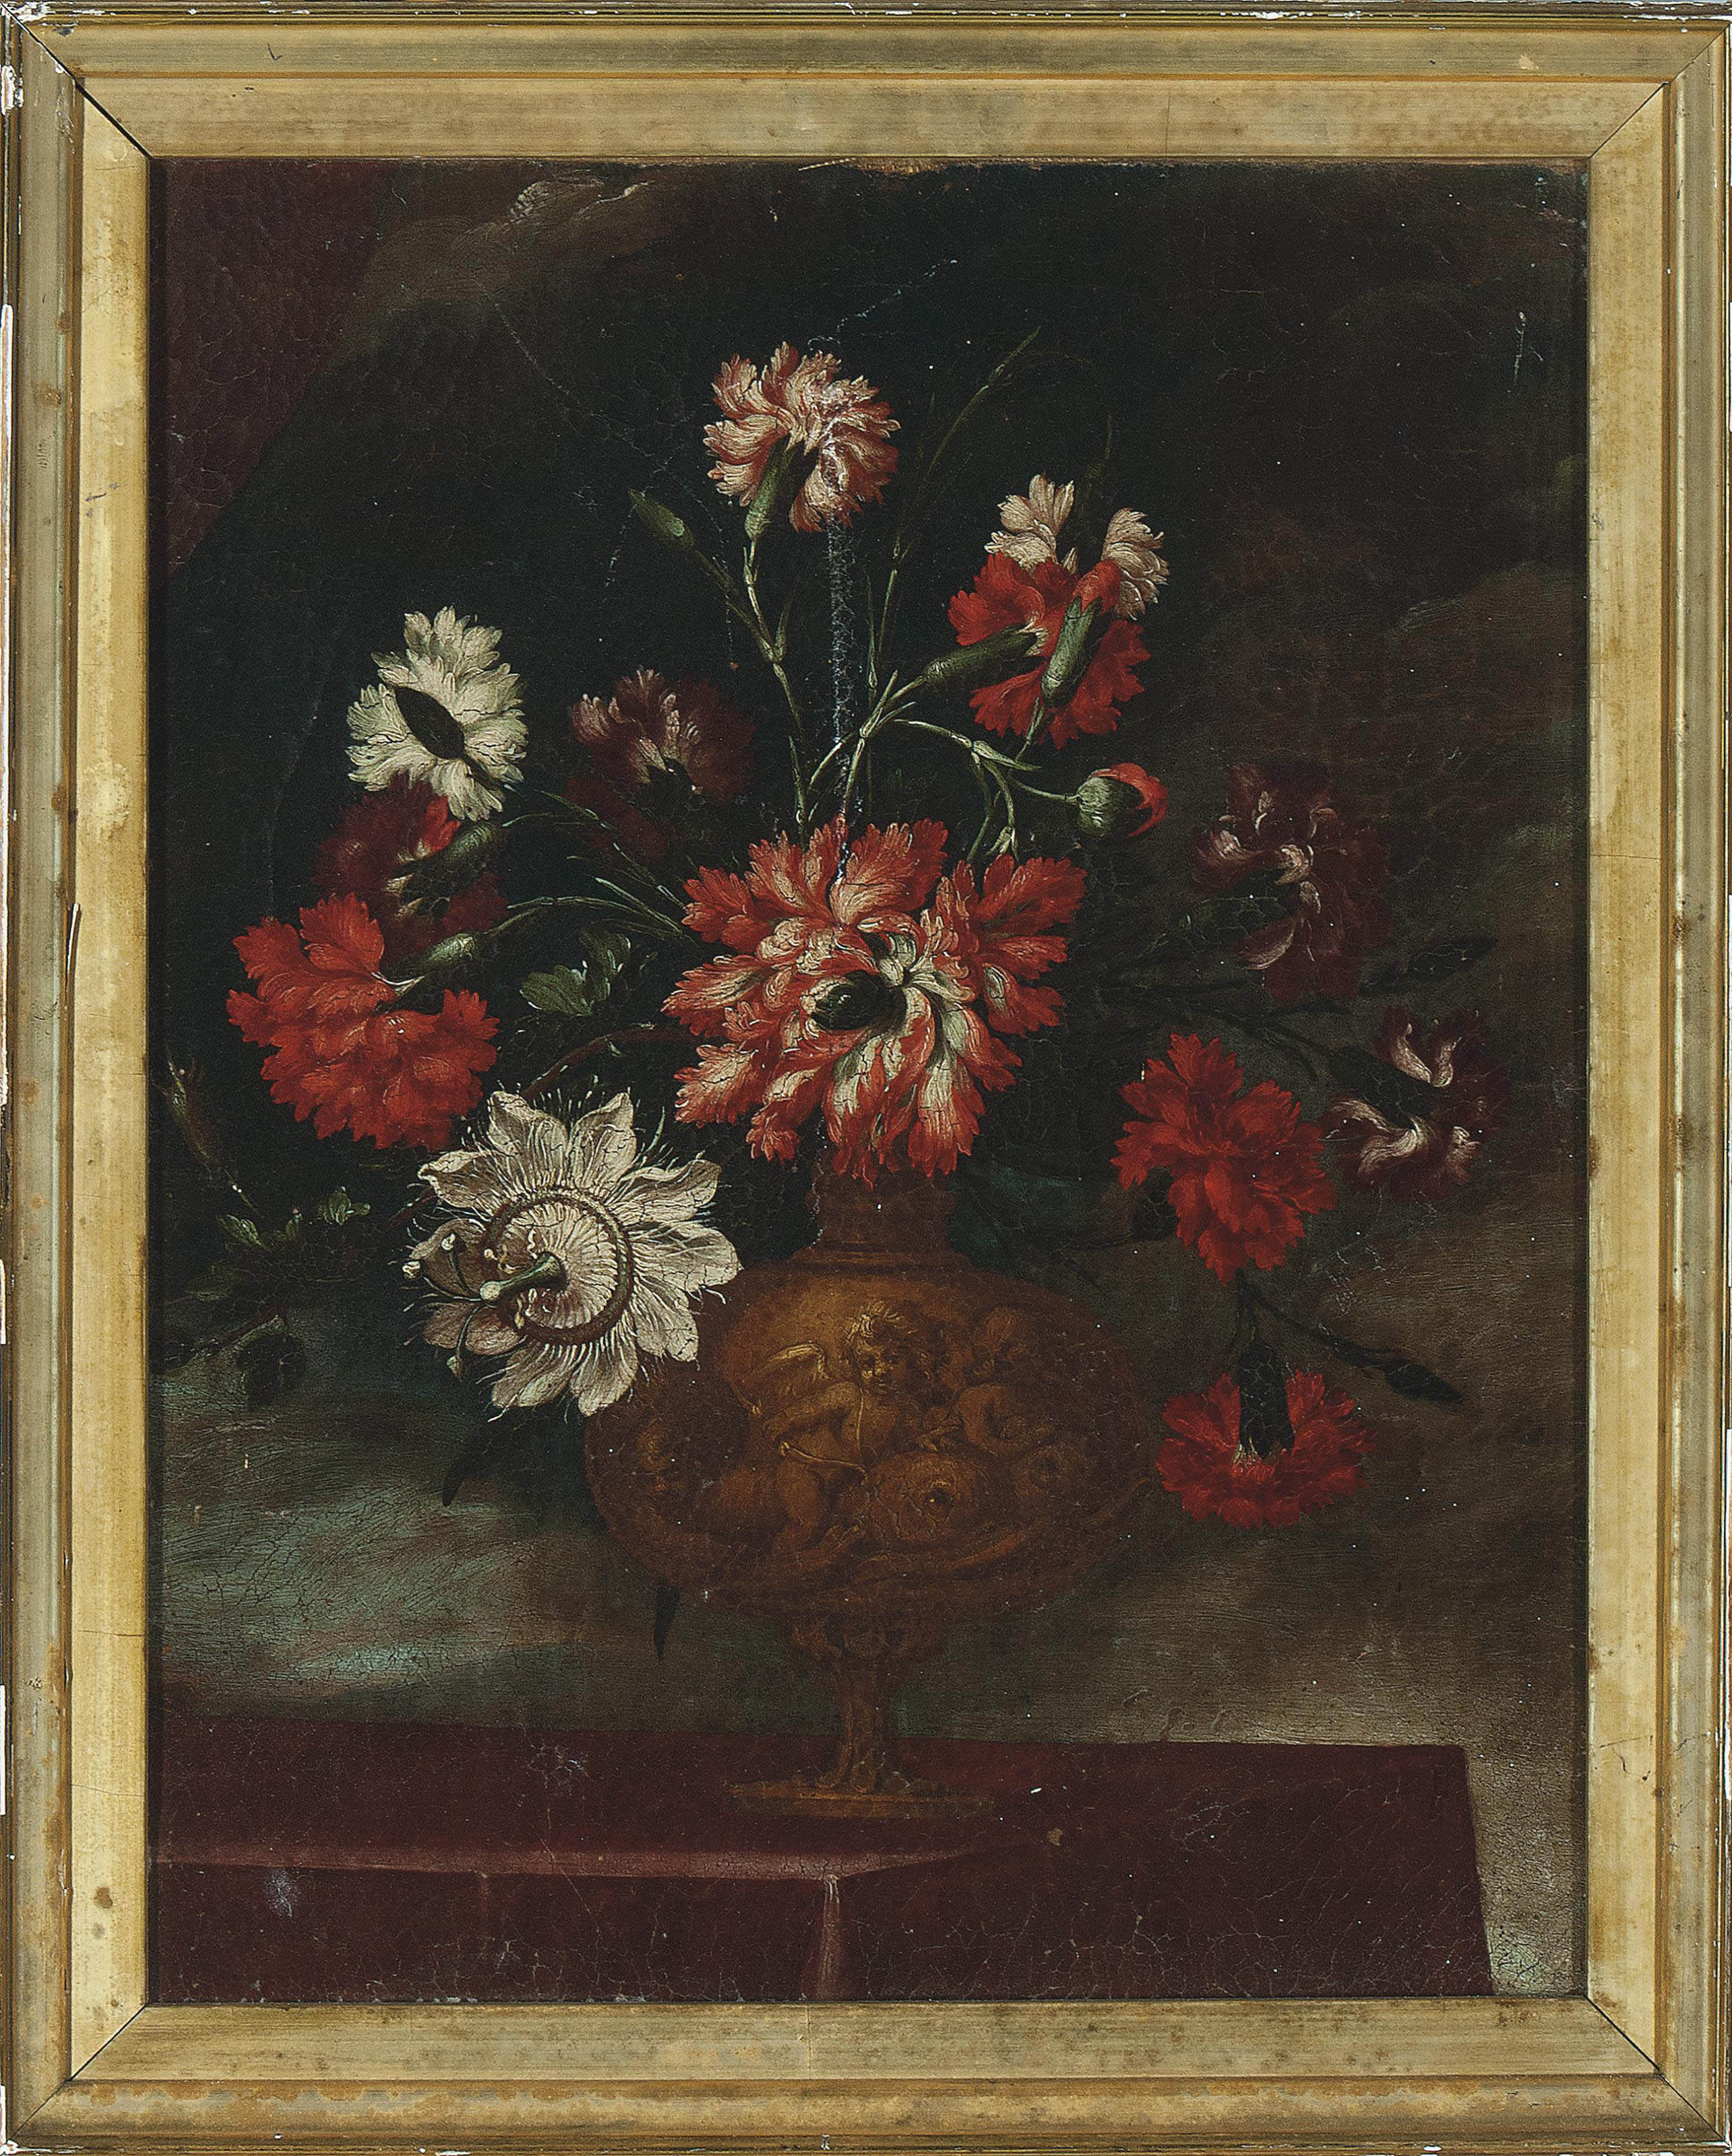 Carnations and passion flowers in an urn on a ledge